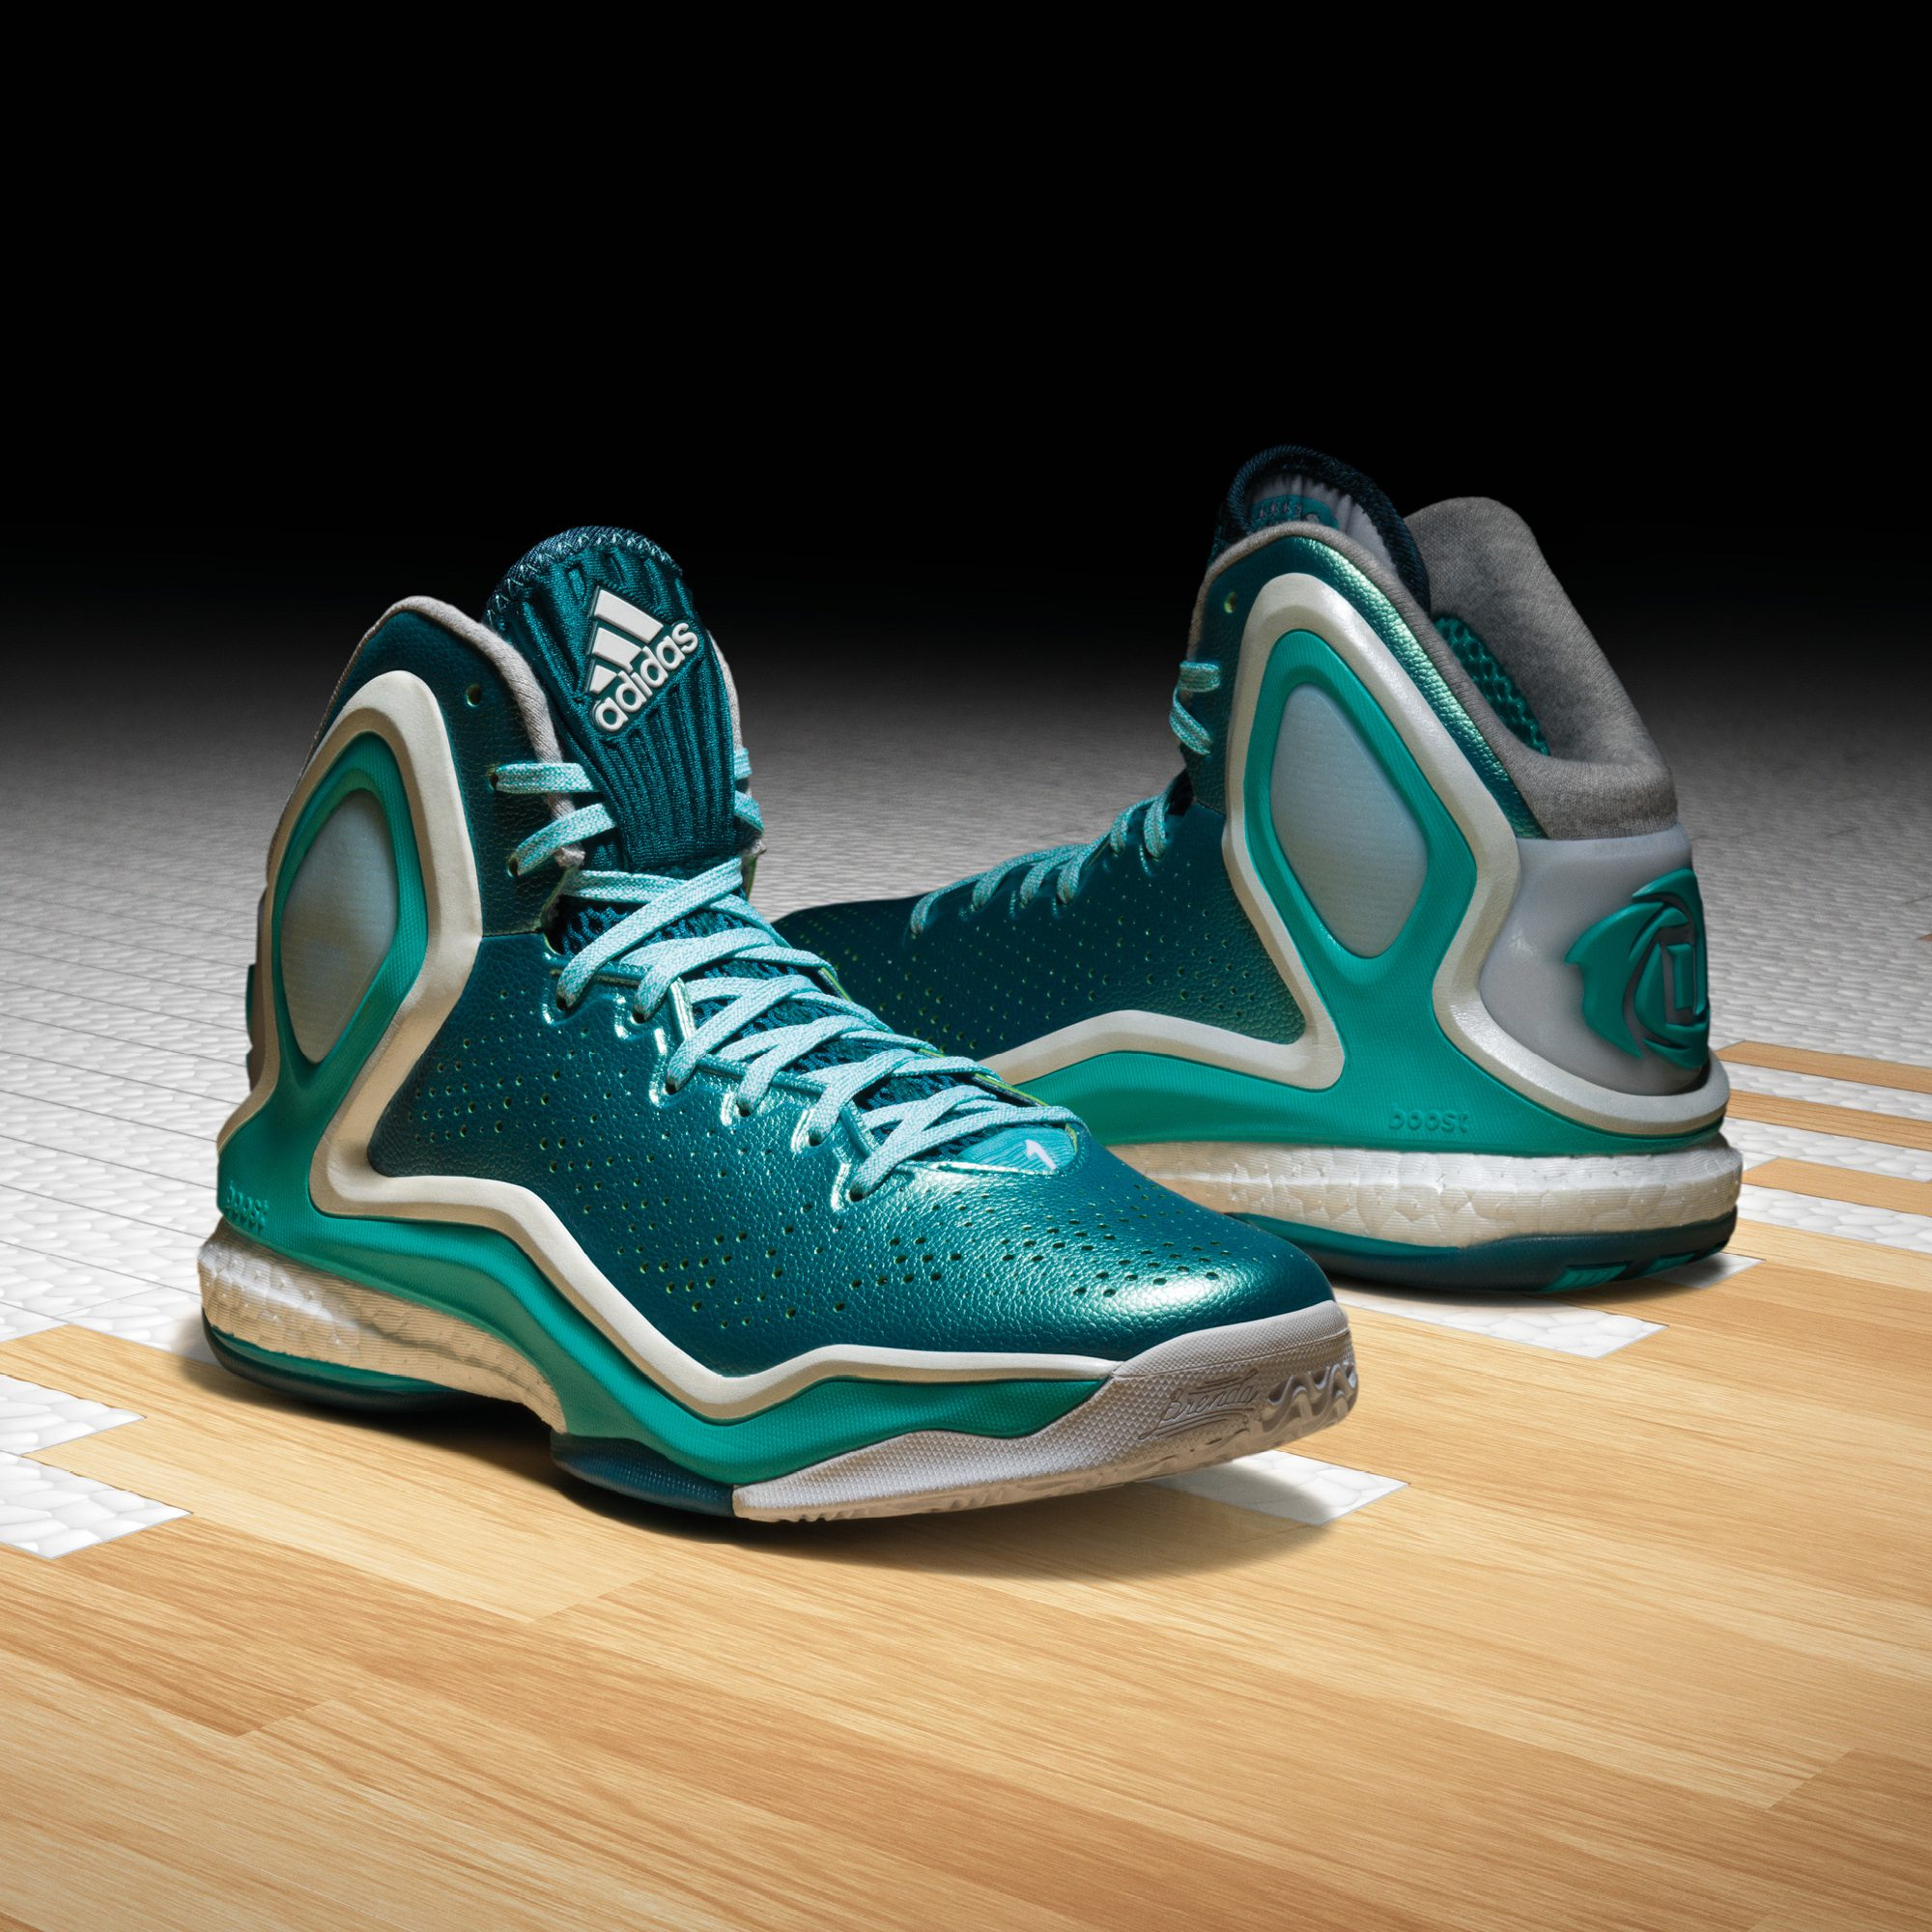 adidas d rose 5 boost fit